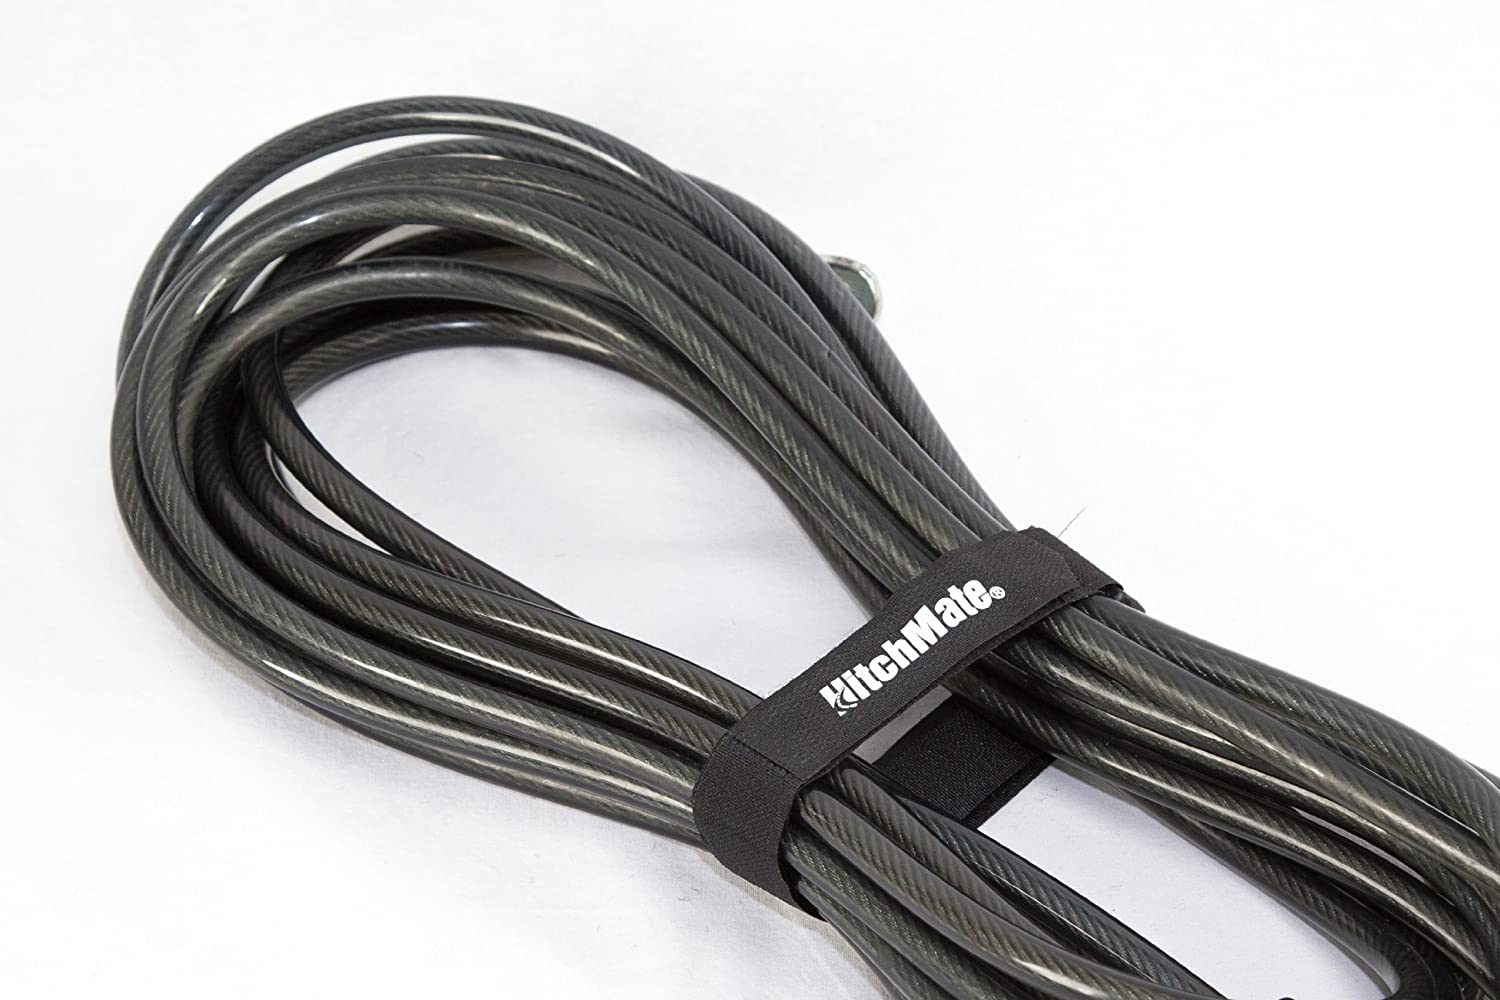 Pack of 25 Heininger HitchMate 4086 QuickCinch Black 21 hook and loop Soft Strap,